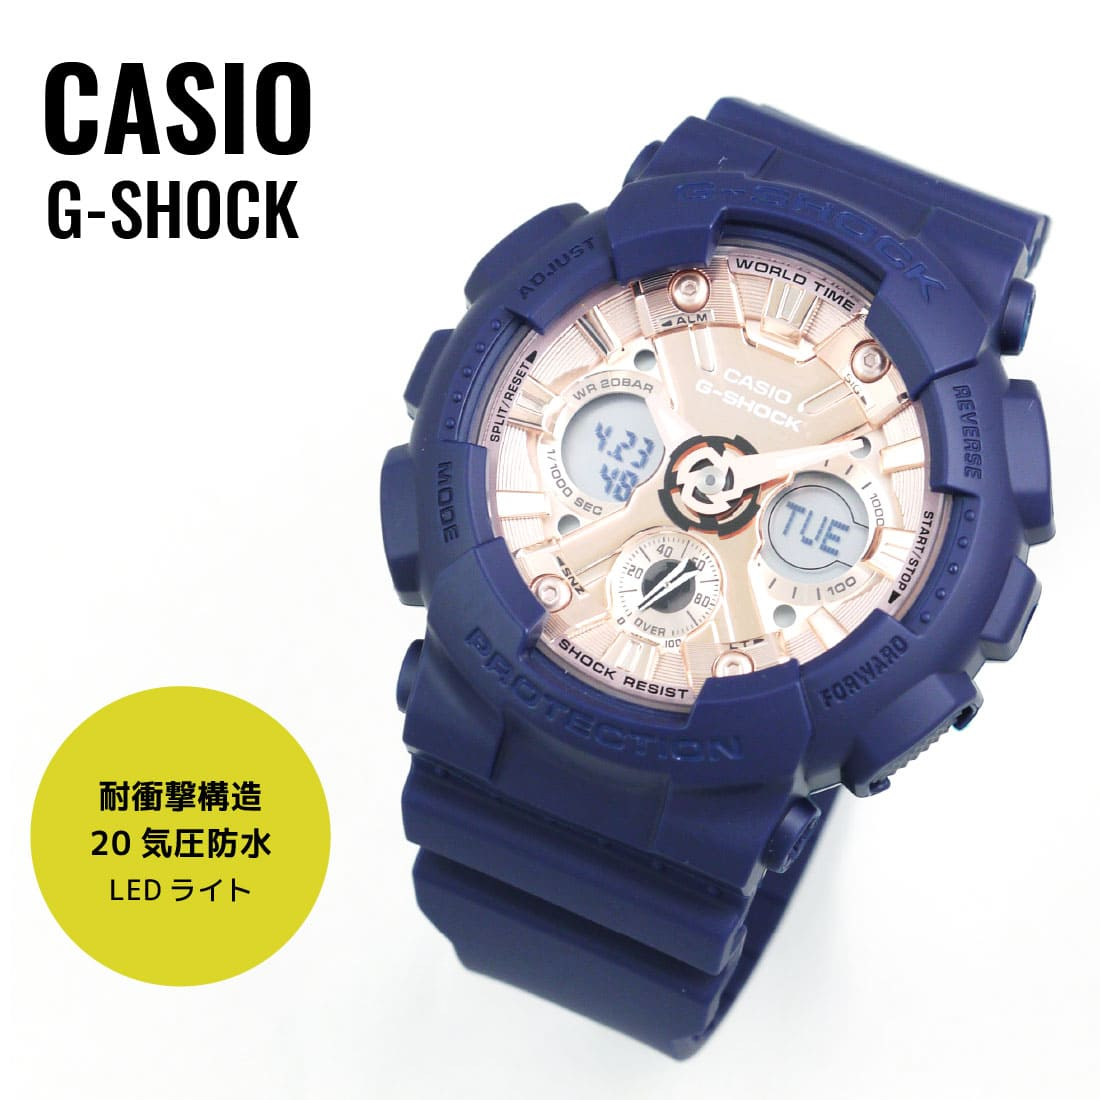 腕時計, 男女兼用腕時計 919922 42CASIO G-SHOCK G S series GMA-S120MF-2A2